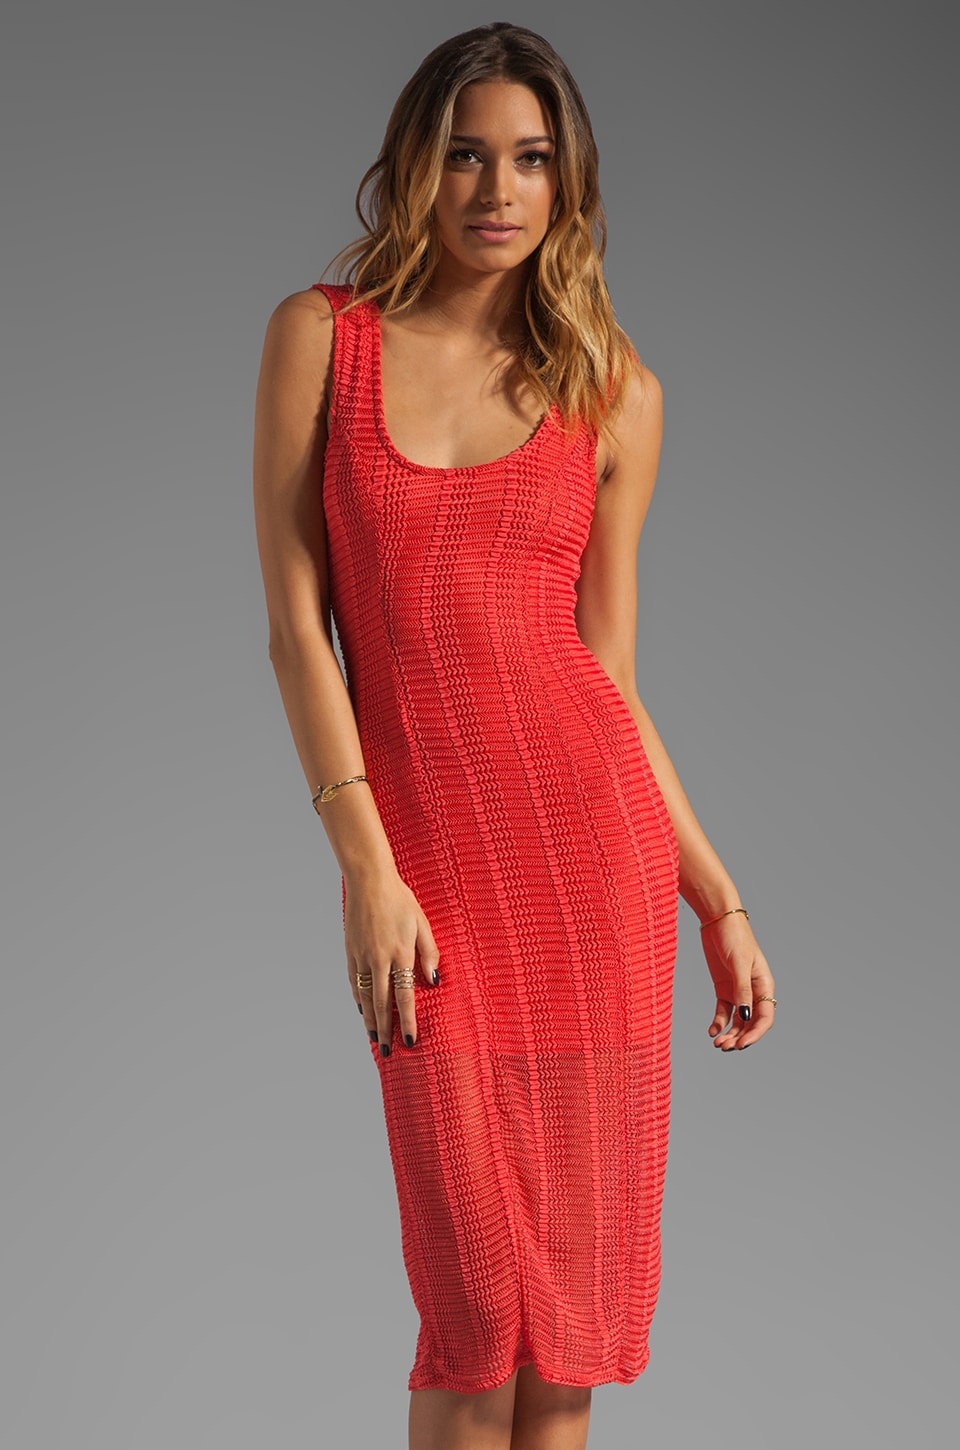 Lovers + Friends True Love Dress in Tangerine Stretch